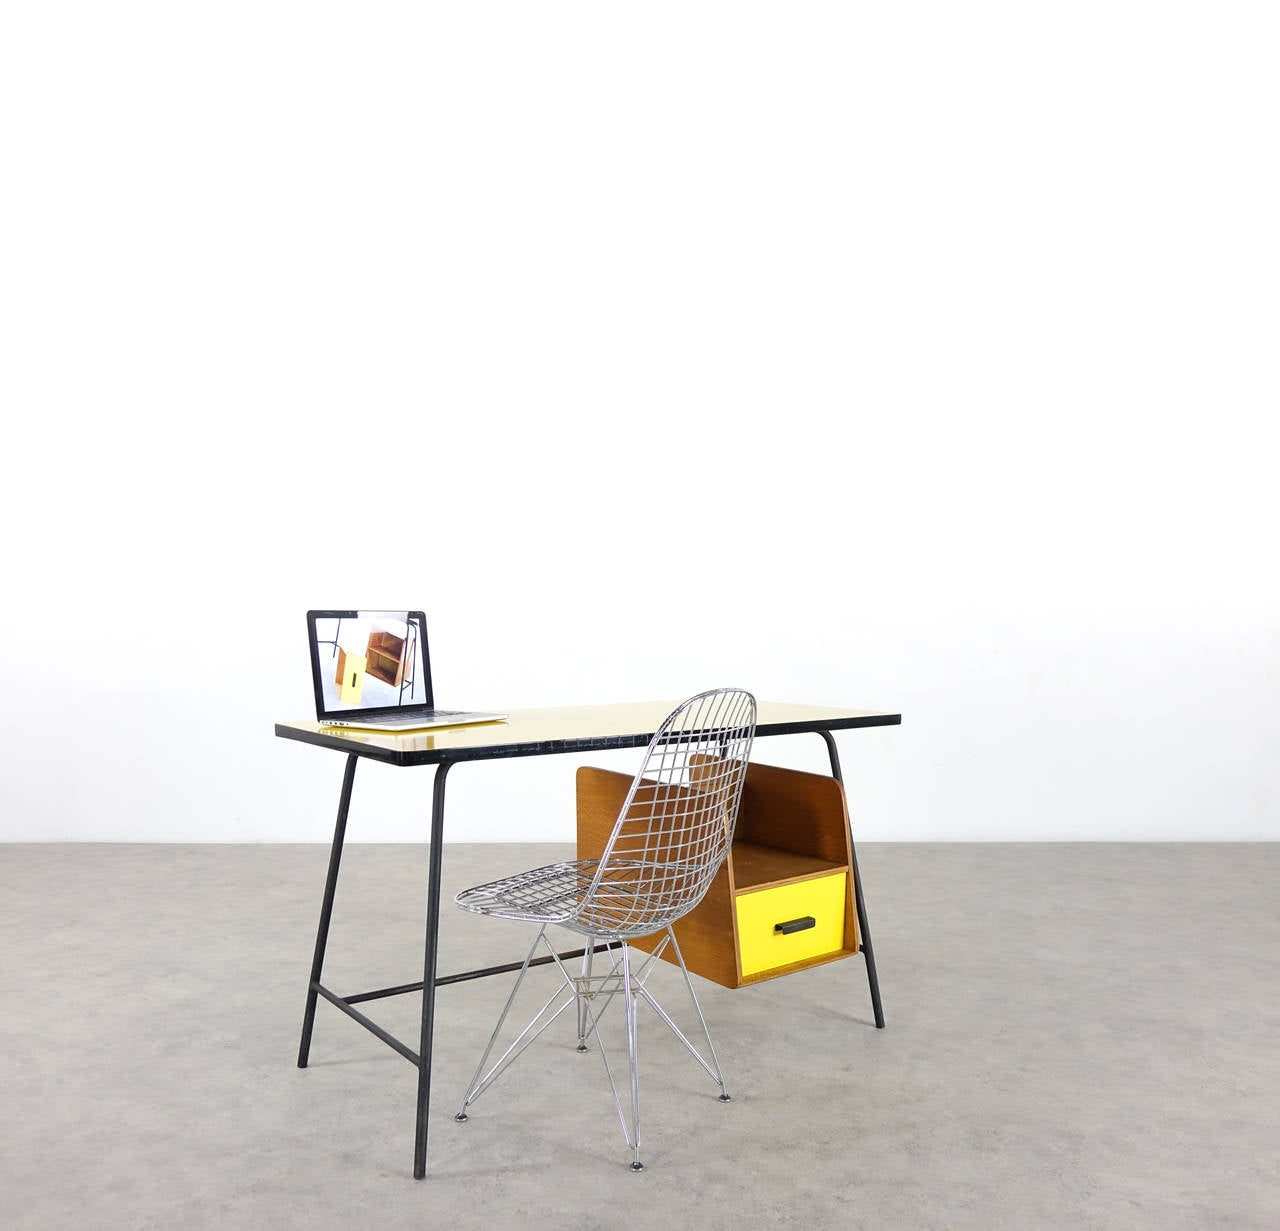 Mid-Century Modern Pierre Paulin Small Yellow Formica Desk and Drawer, France 1957